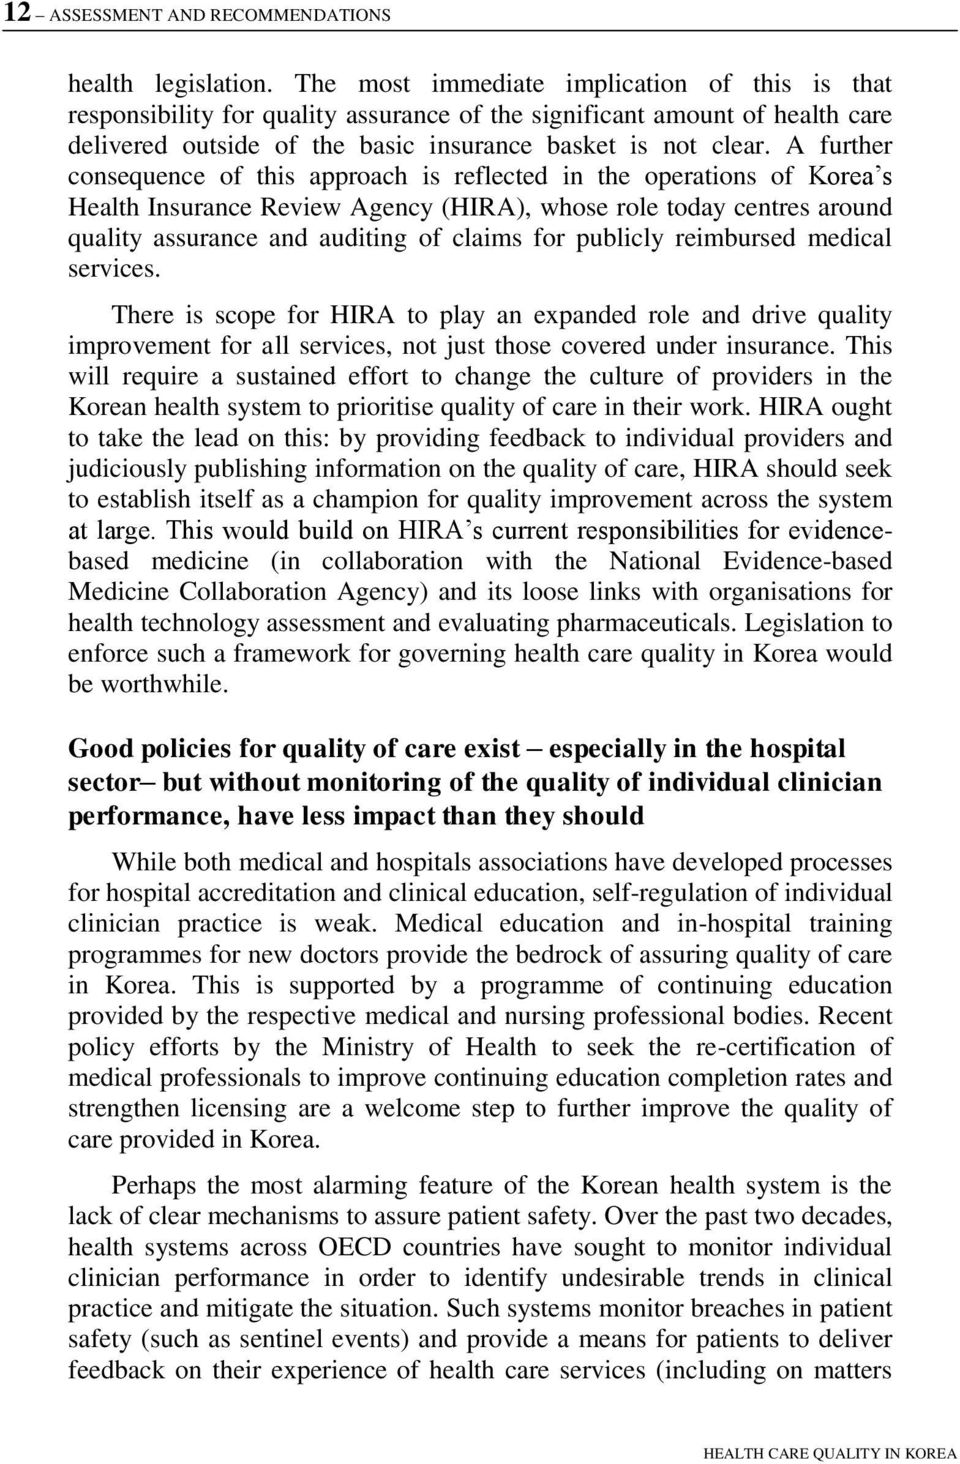 A further consequence of this approach is reflected in the operations of Korea s Health Insurance Review Agency (HIRA), whose role today centres around quality assurance and auditing of claims for